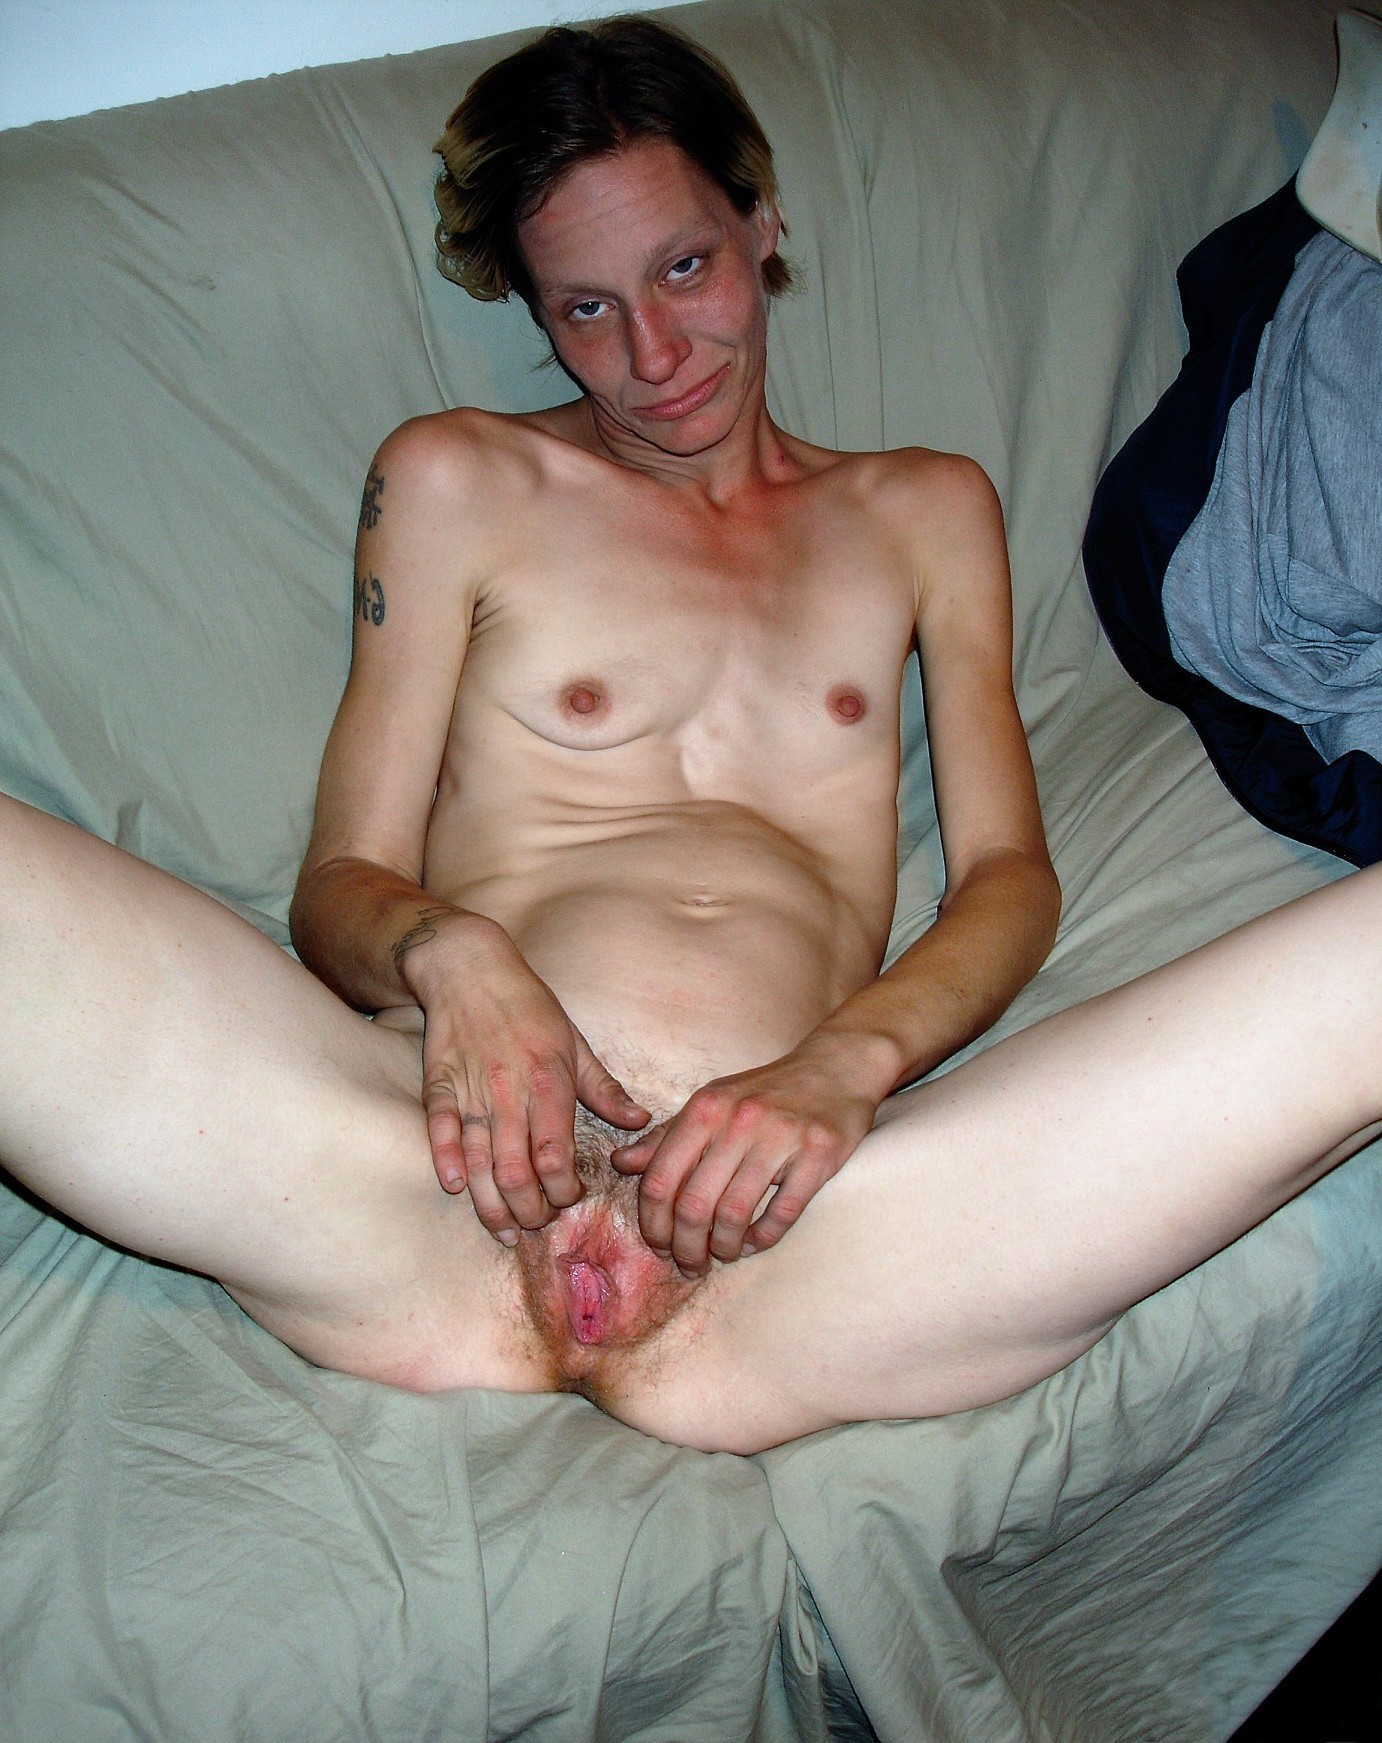 ugly amateur girl naked